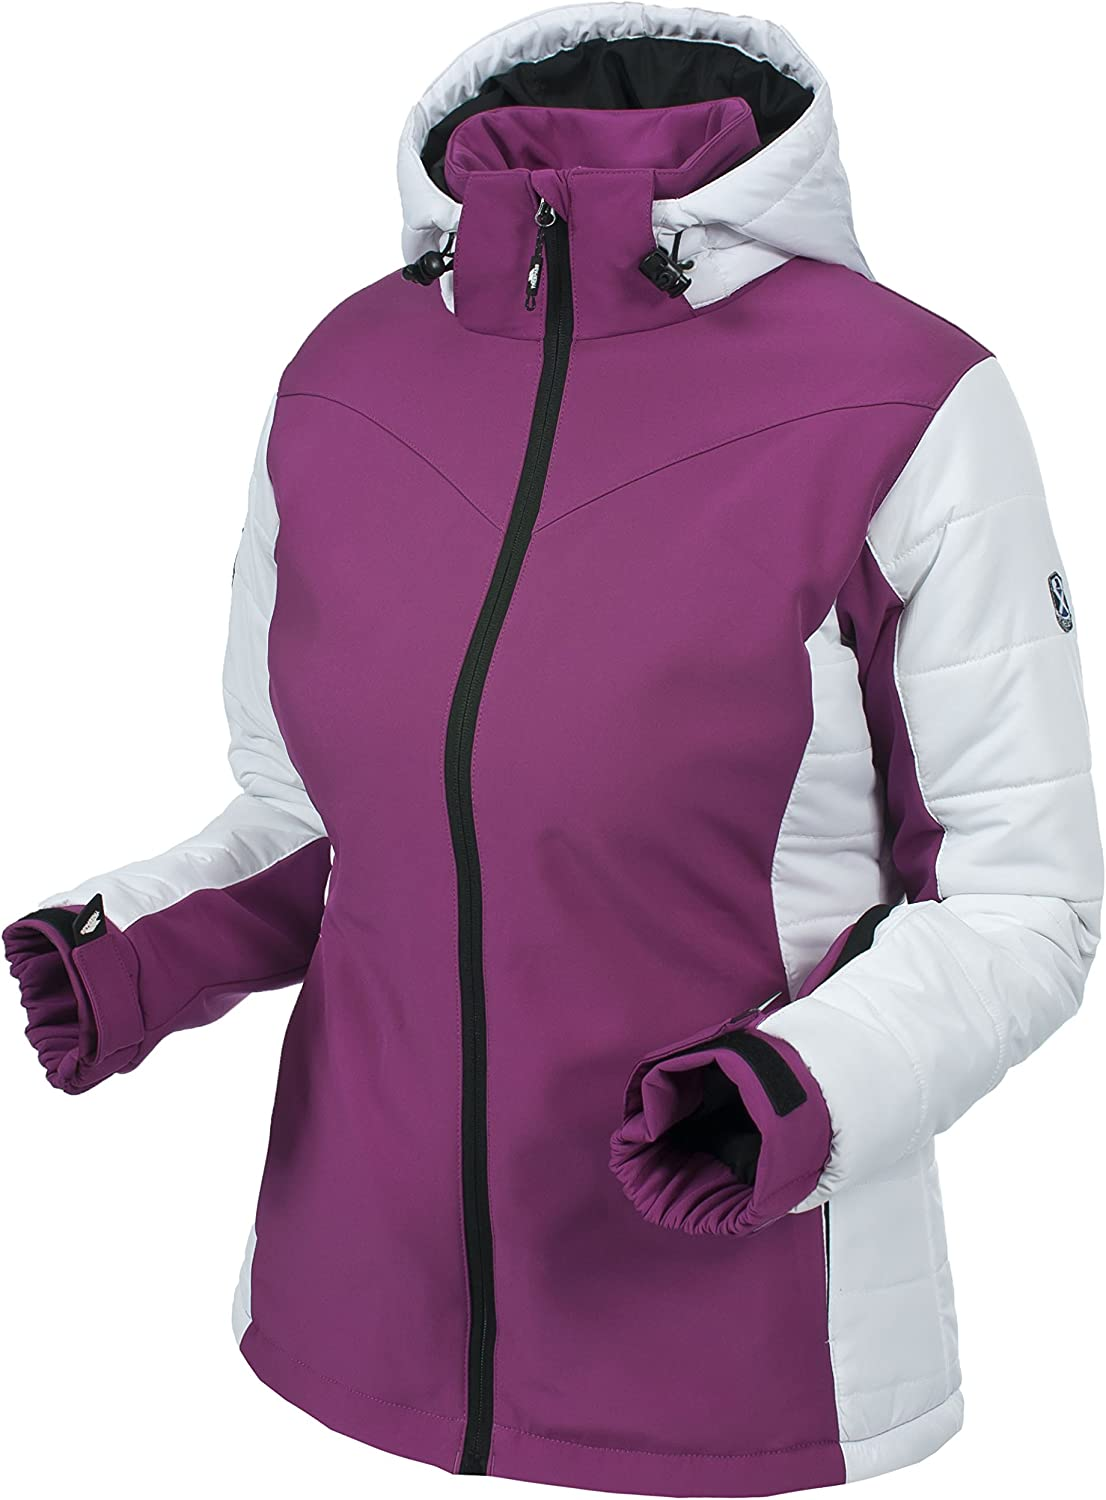 Trespass Women's TP50 Padstow Ski Jacket